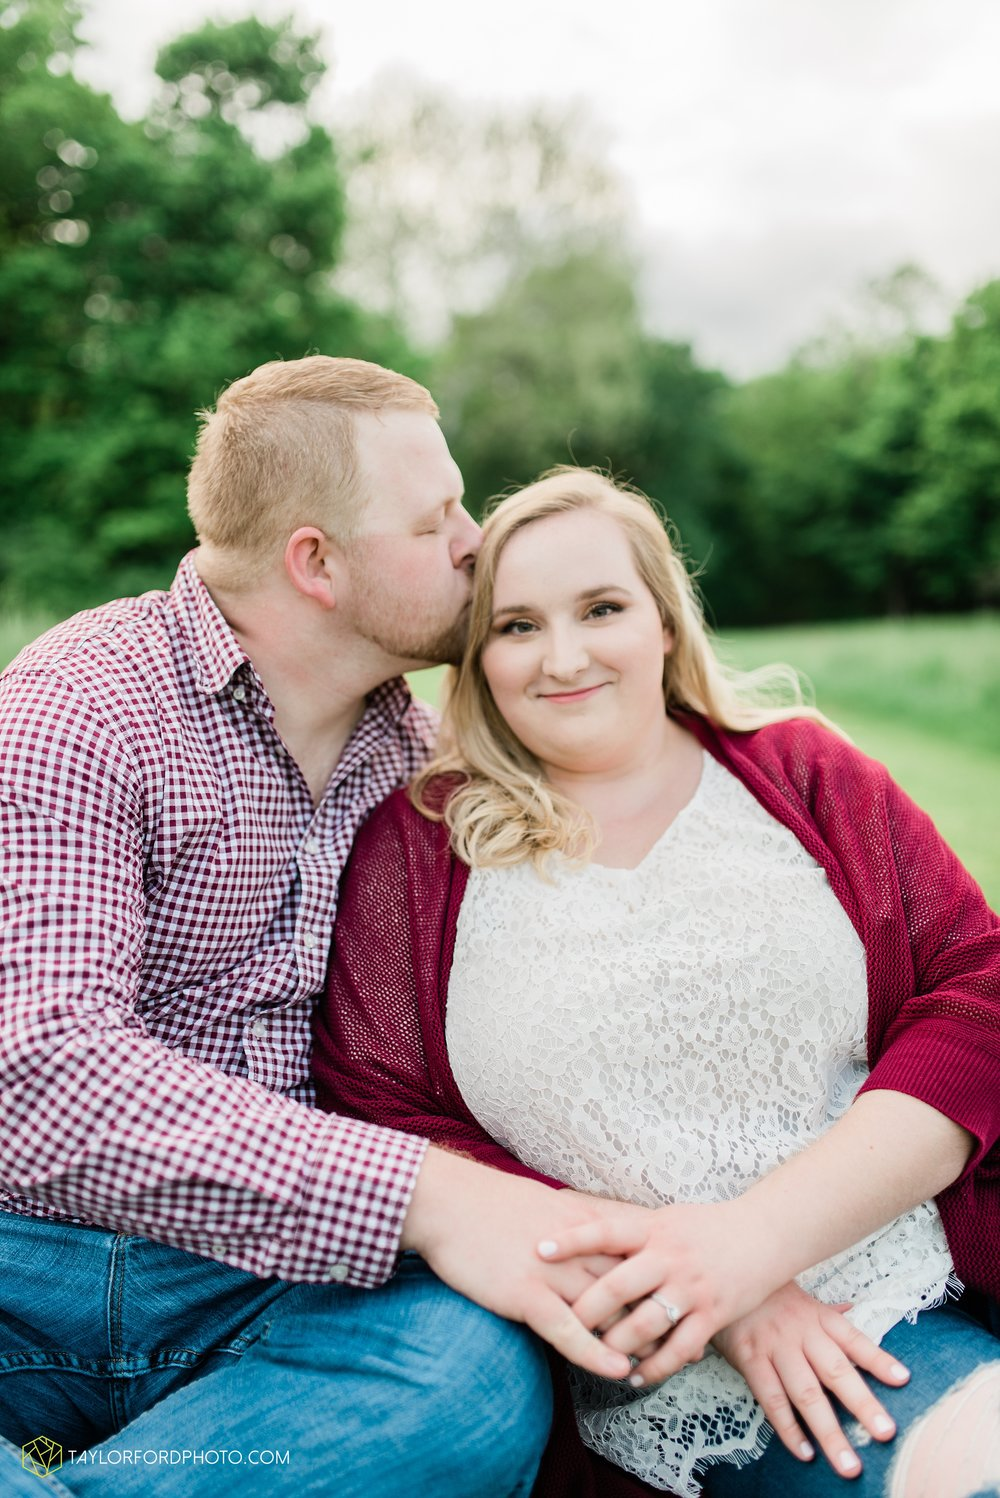 downtown-ipfw-fort-wayne-indiana-engagement-photographer-Taylor-Ford-Photography_7499.jpg